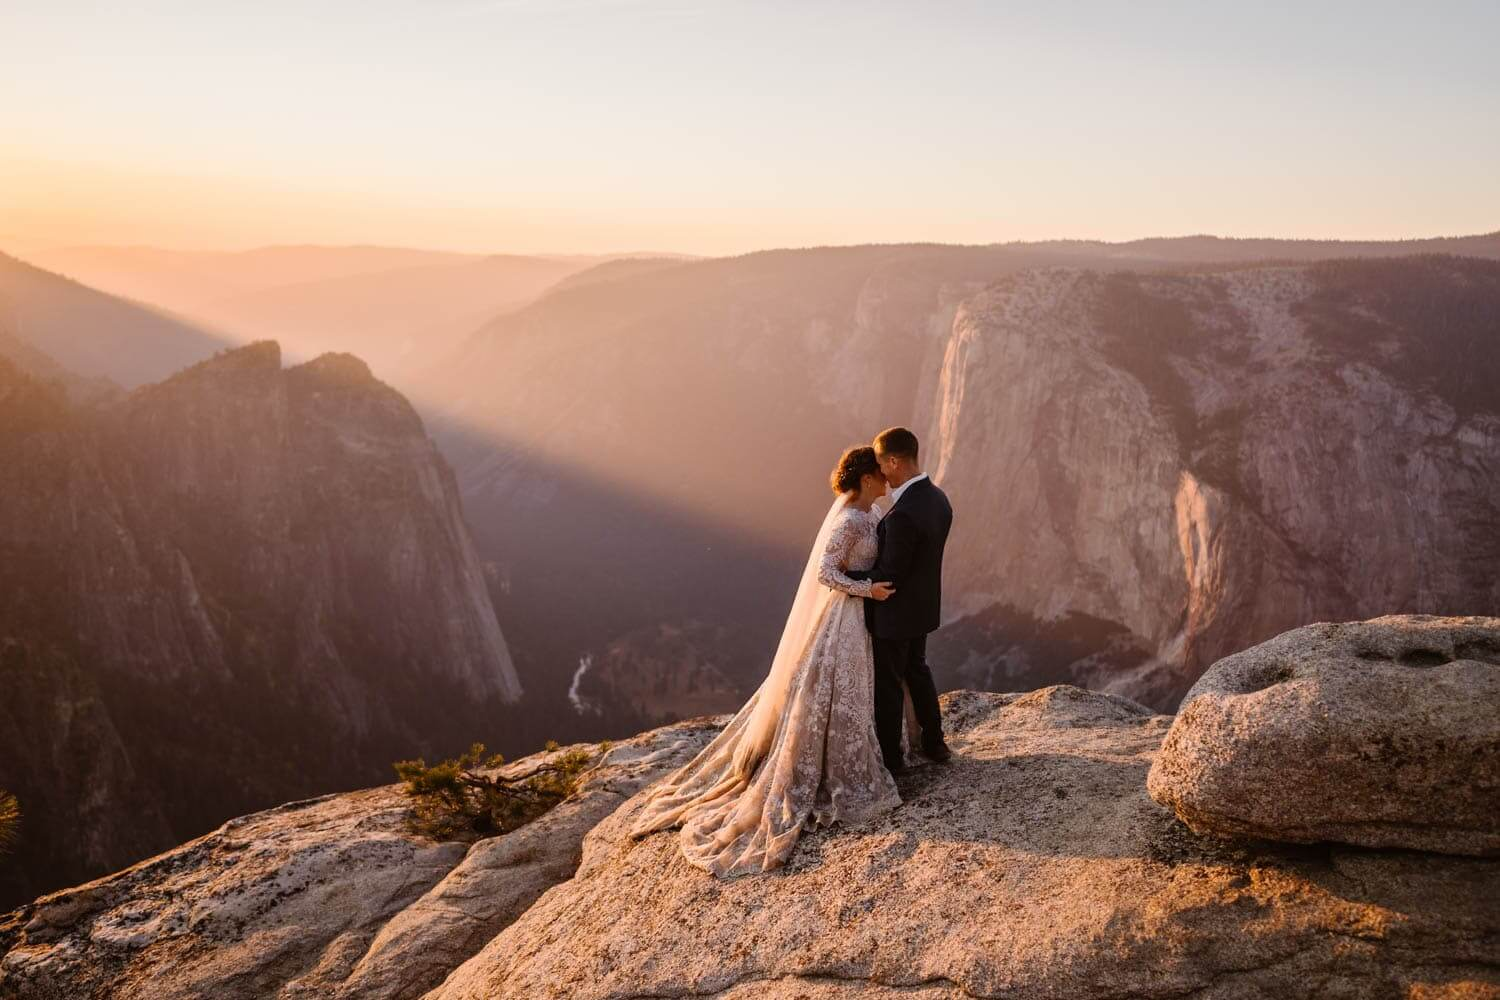 Yosemite National Park Elopement Packages & Guide